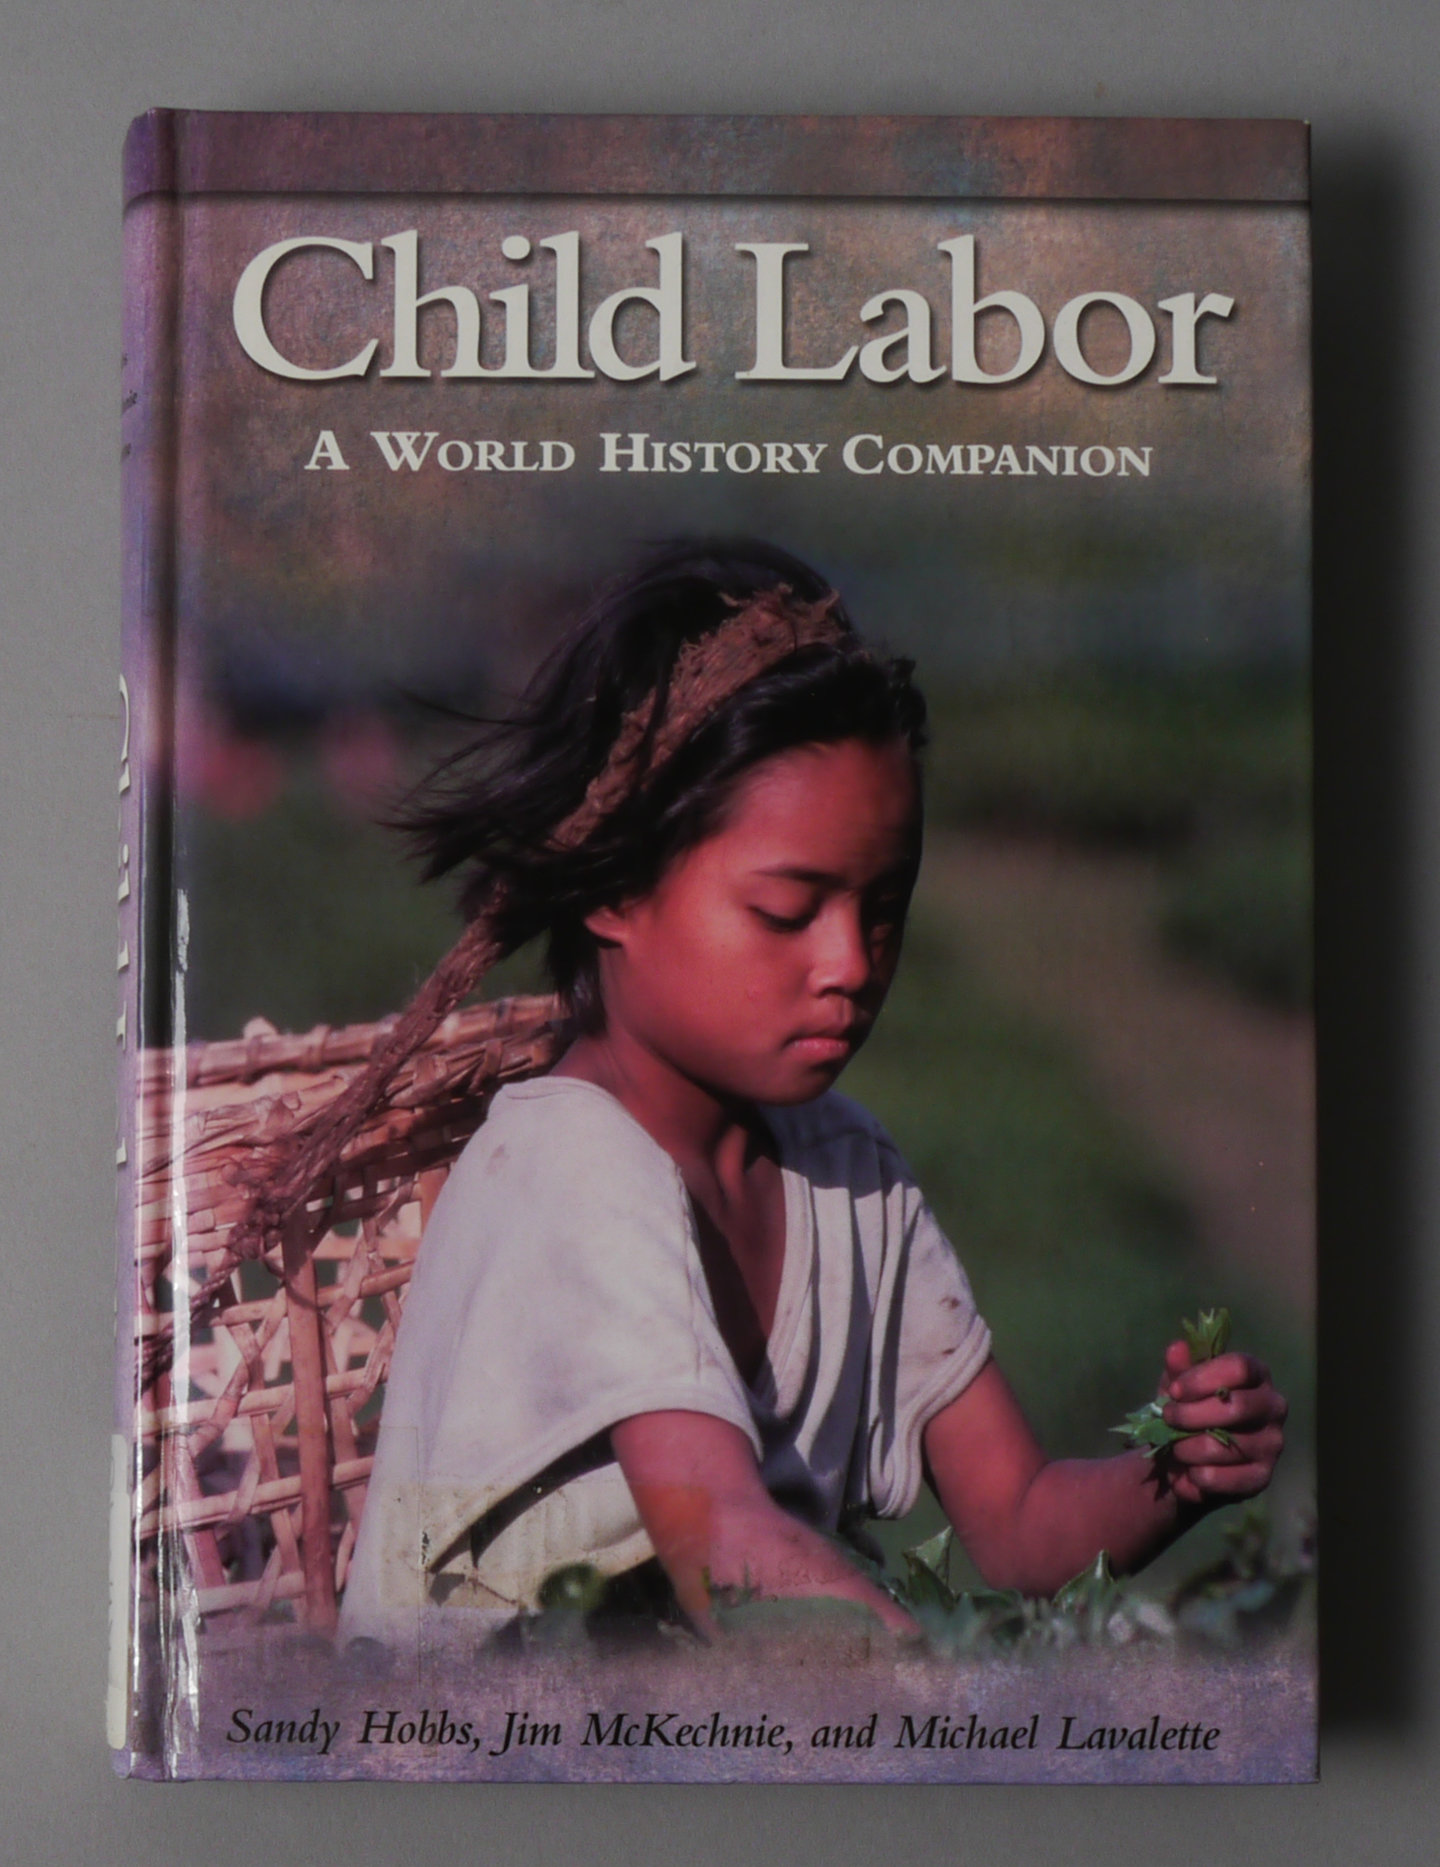 Child Labour: a World History Companion.